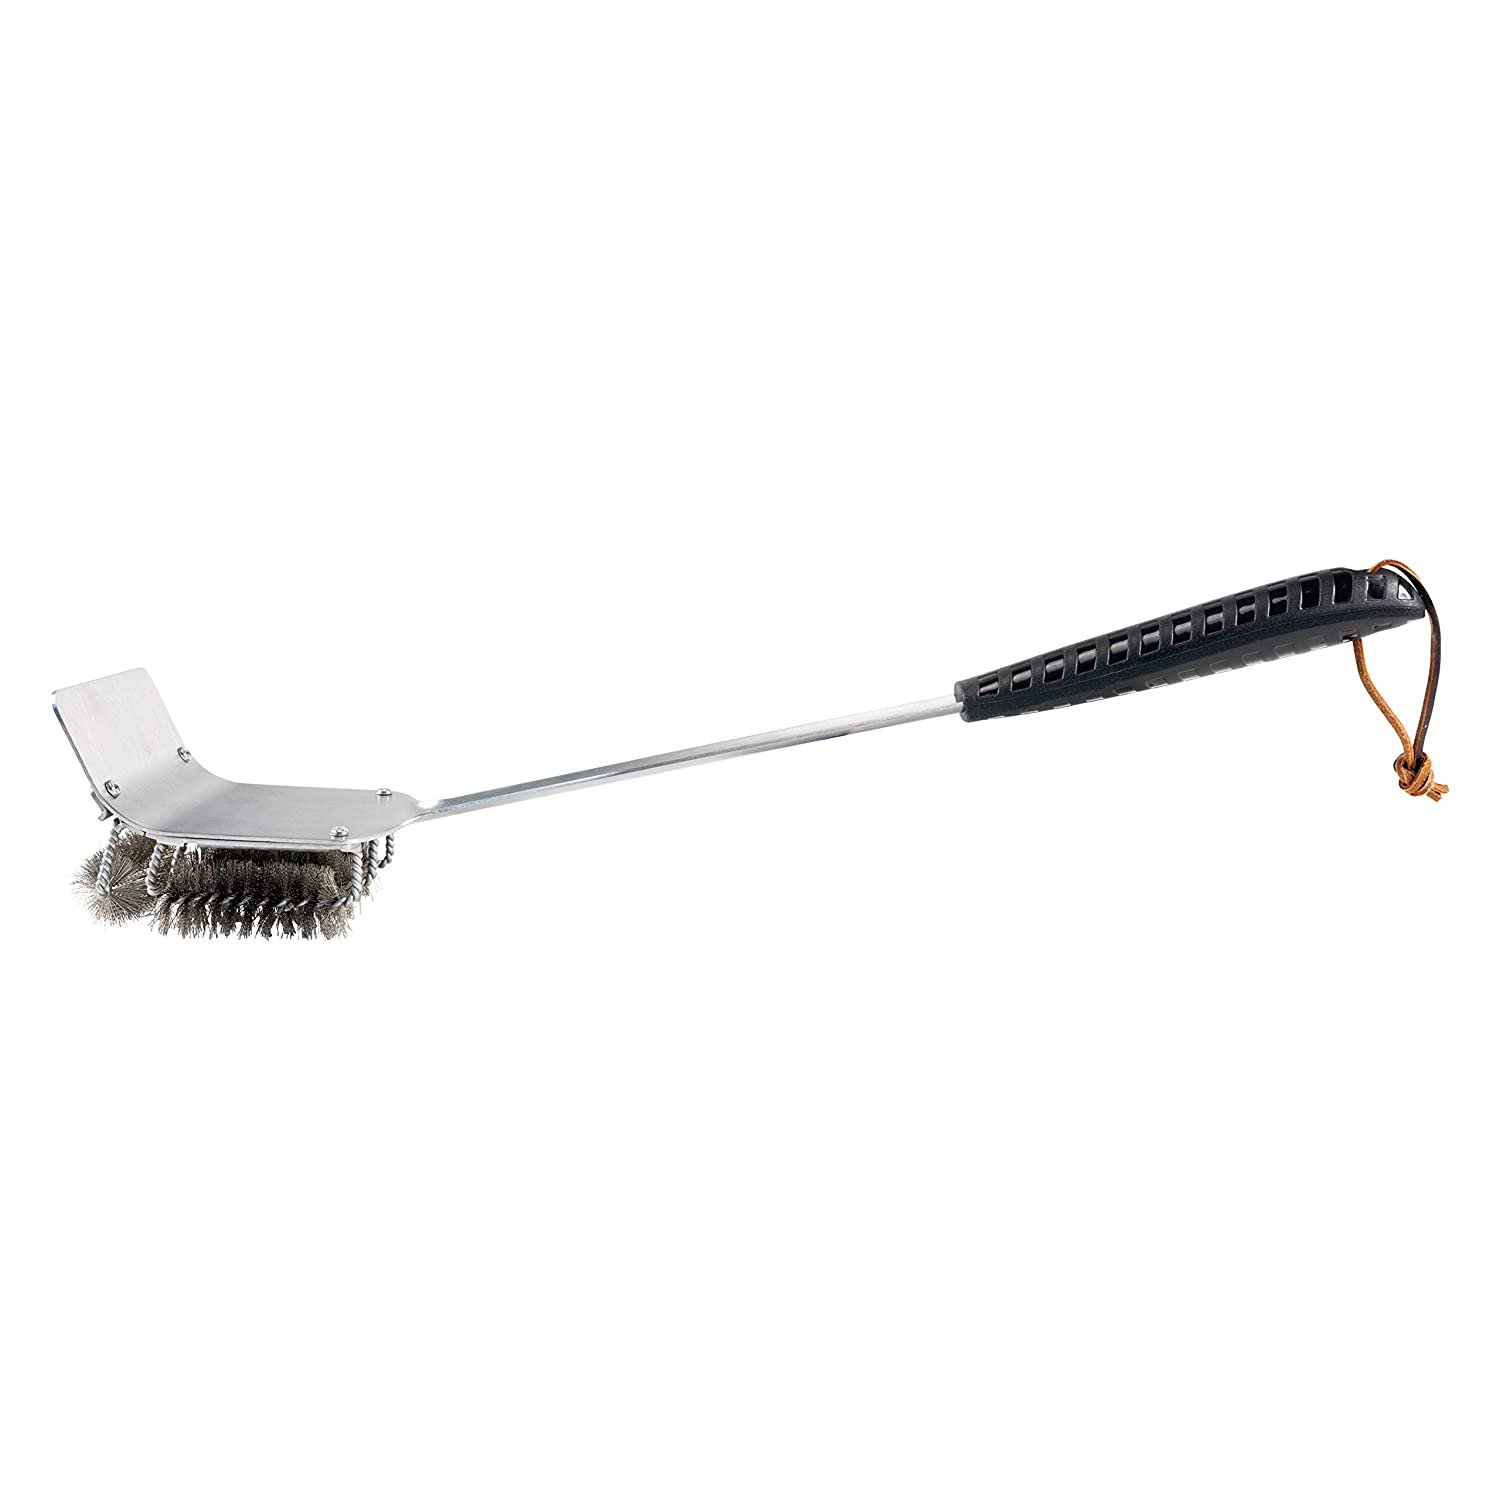 BBQ Dragon Brush n Rake Grill Brush Cleaner Accessory – Coal Rake Tools and Grill Scraper, Cleaning Stainless Steel Cast Iron Barbecues, Weber, Metal Bristles